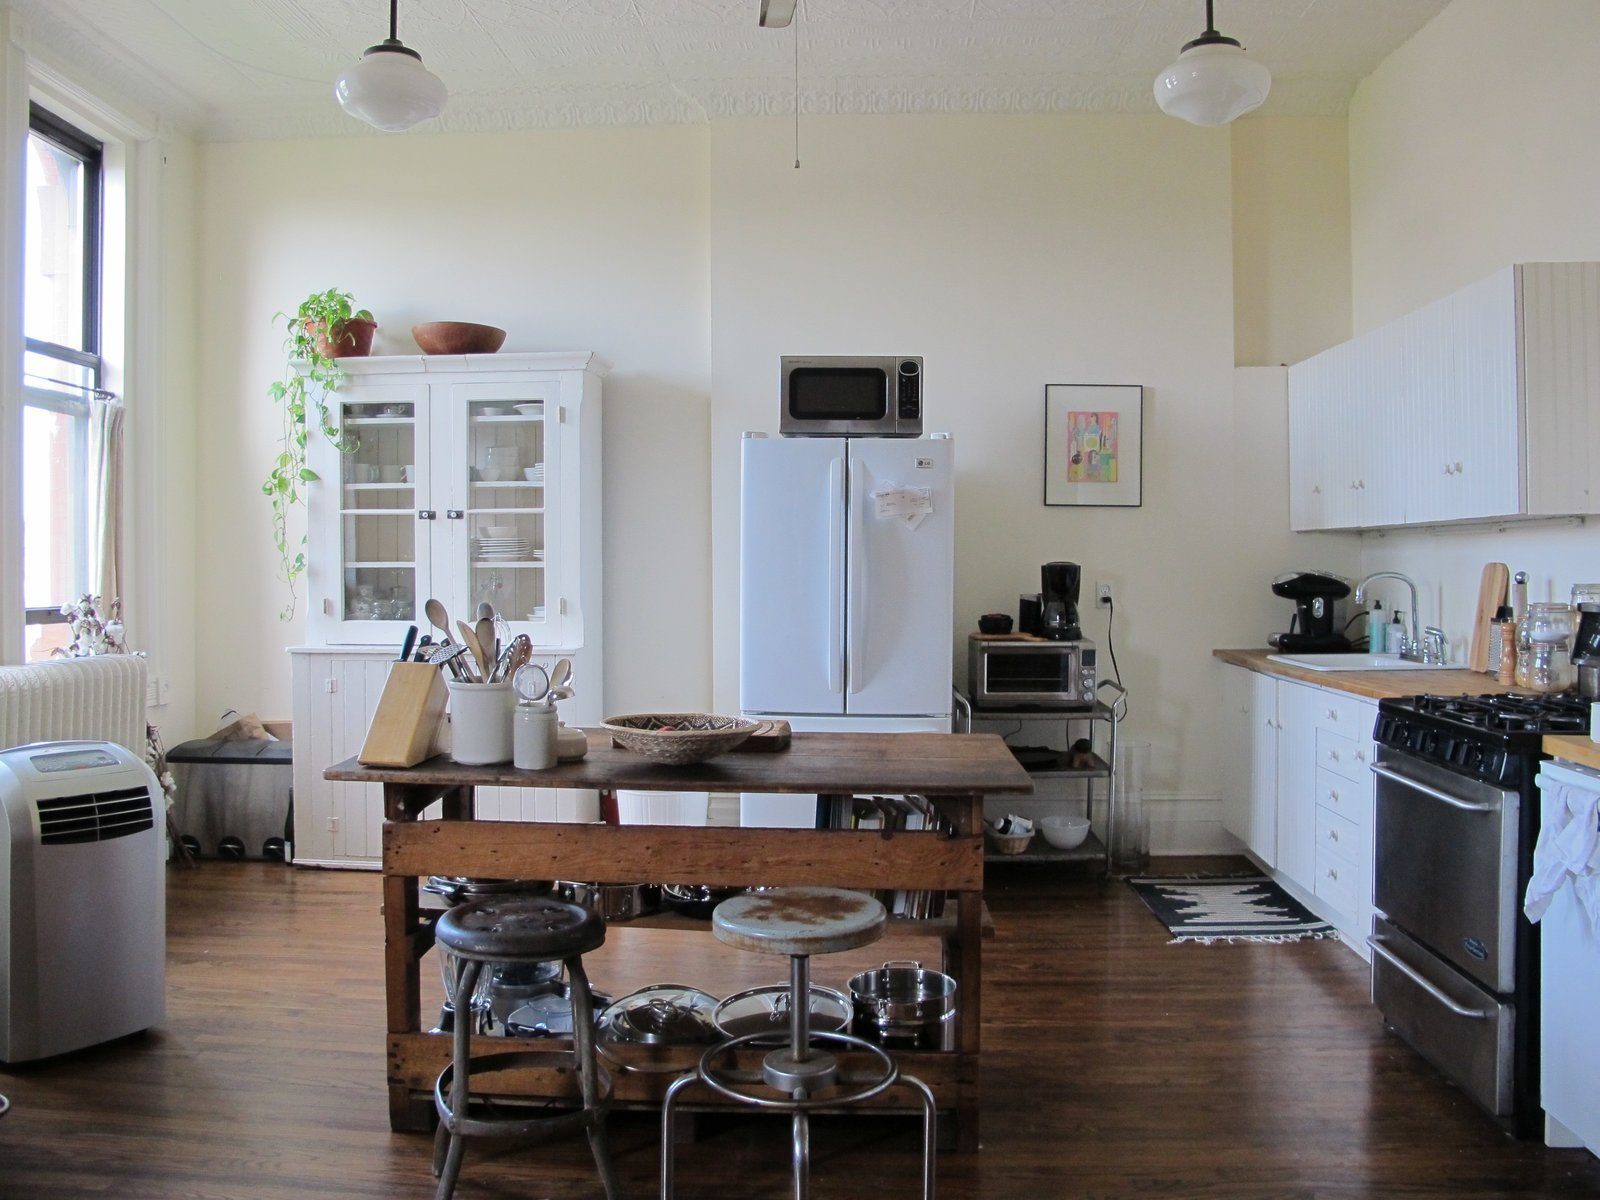 Photo 9 of 22 in A 19th-Century Schoolhouse in Brooklyn Becomes a Classy Apartment